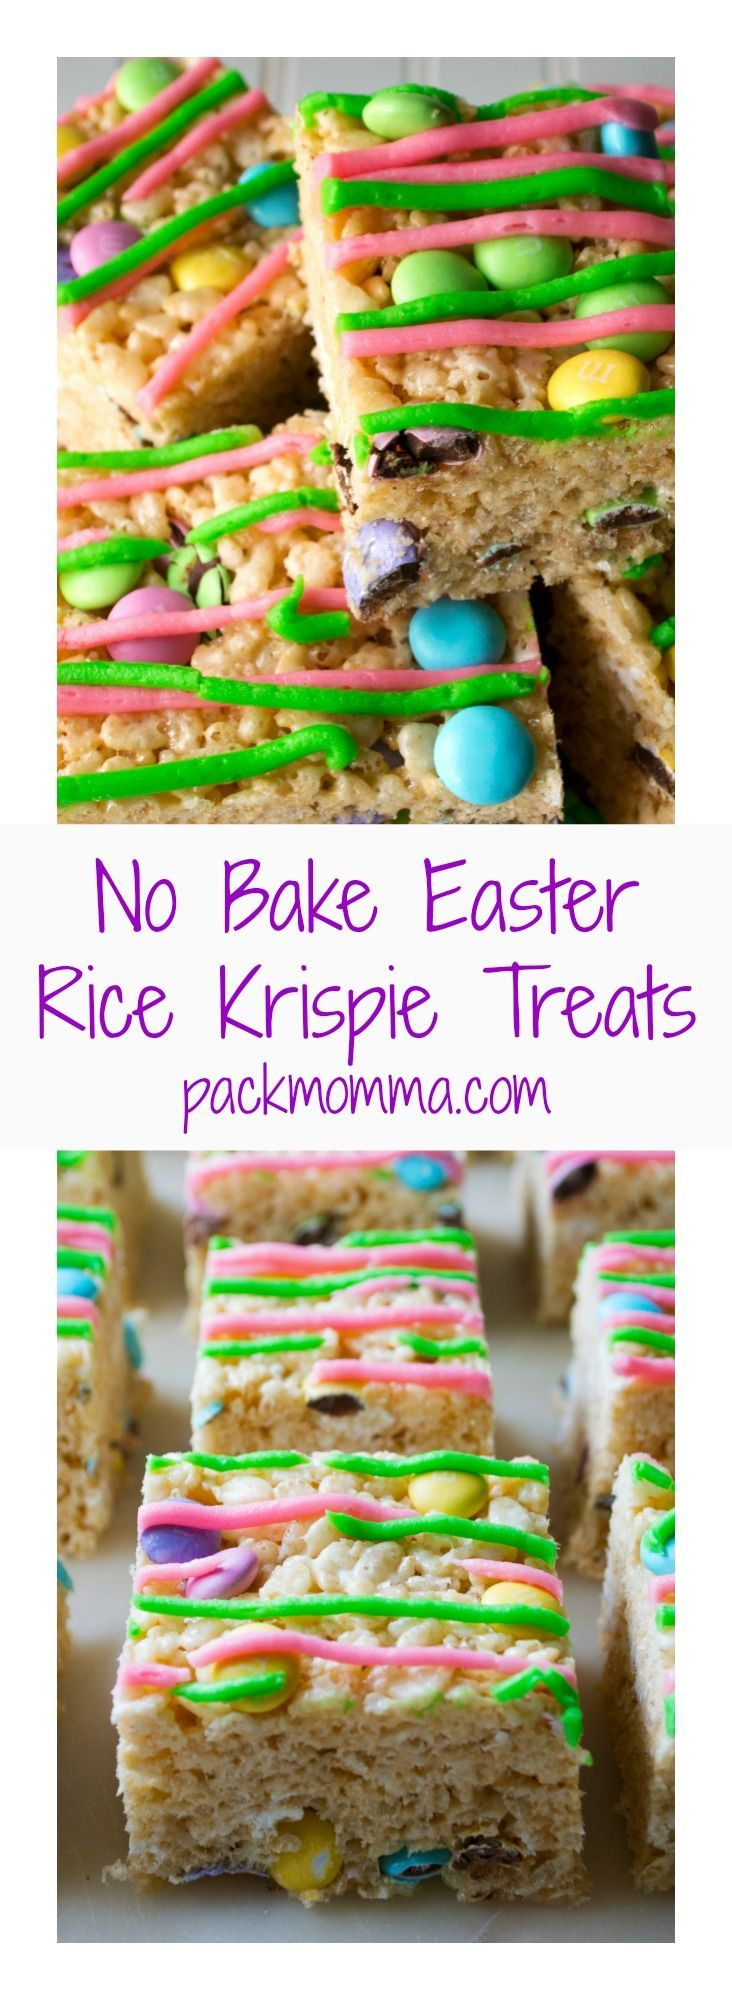 No-Bake Easter Rice Krispie Treats | No-Bake Easter Rice Krispie Treats are the perfect dessert to celebrate Springtime. Adorable, delicious and easy to make, these are the perfect sweet | Pack Momma | http://www.packmomma.com